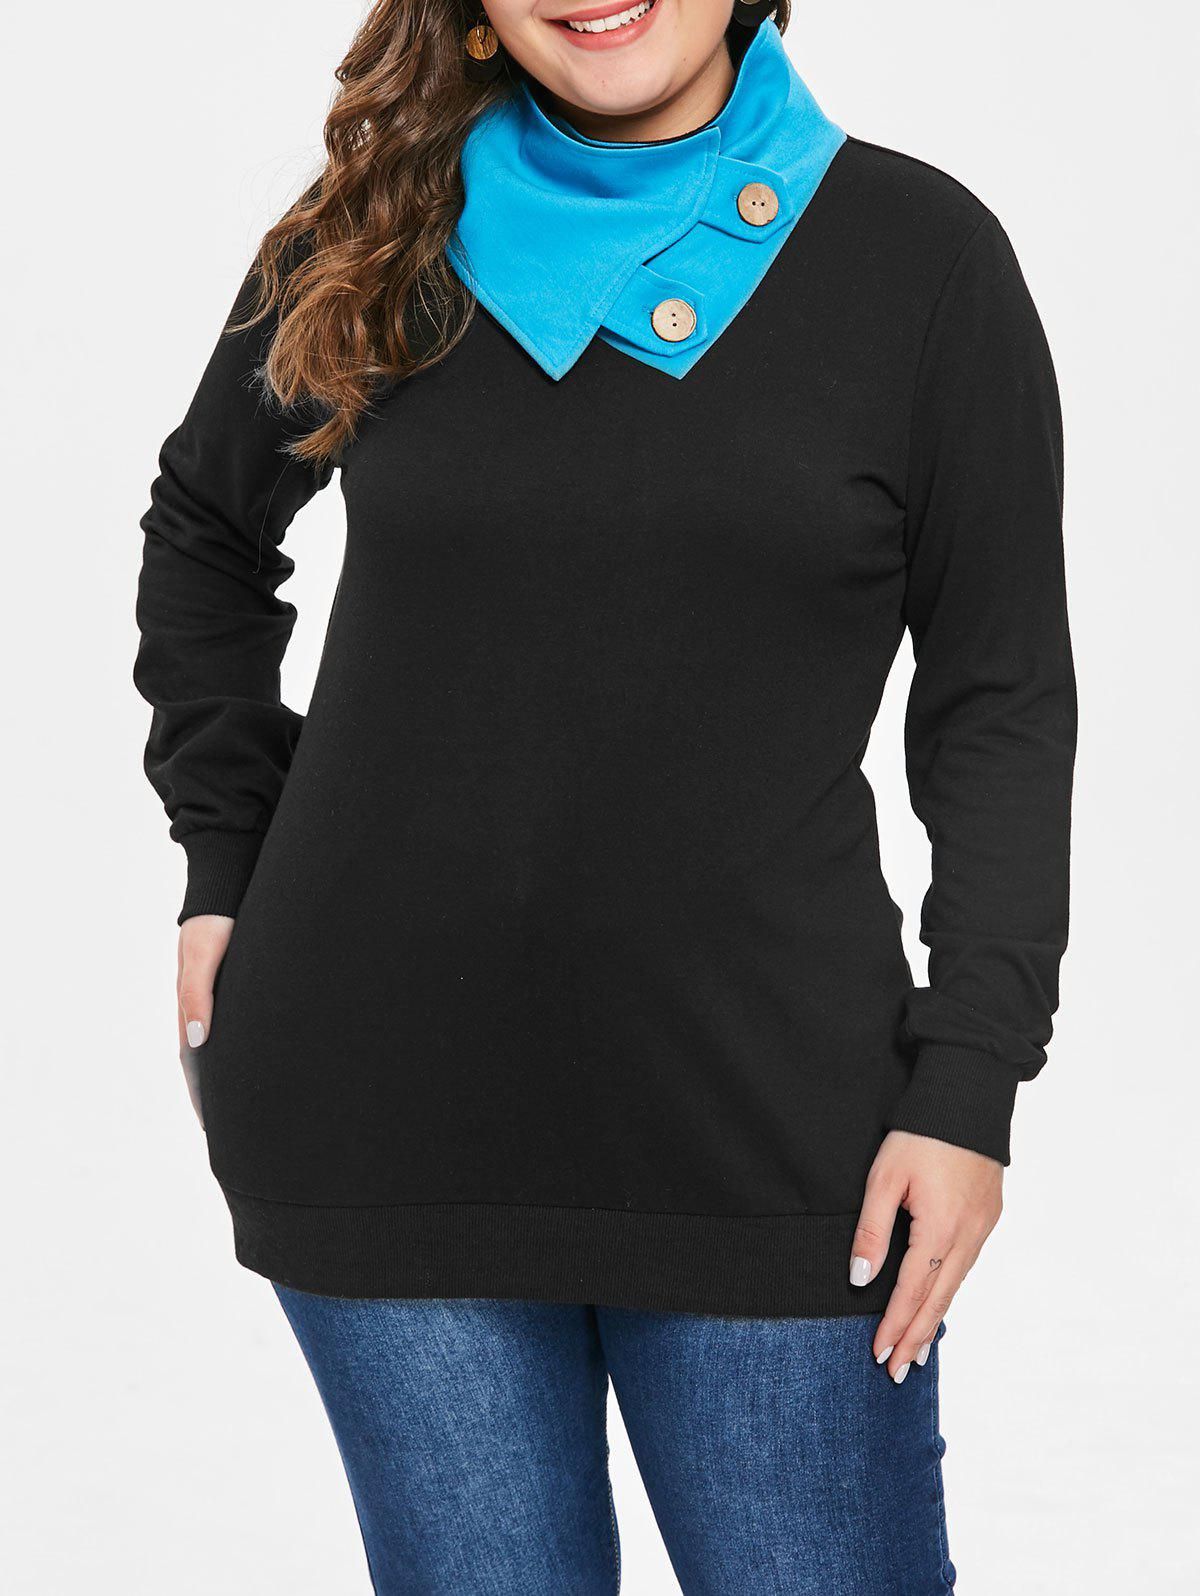 Plus Size Button Embellished Sweatshirt